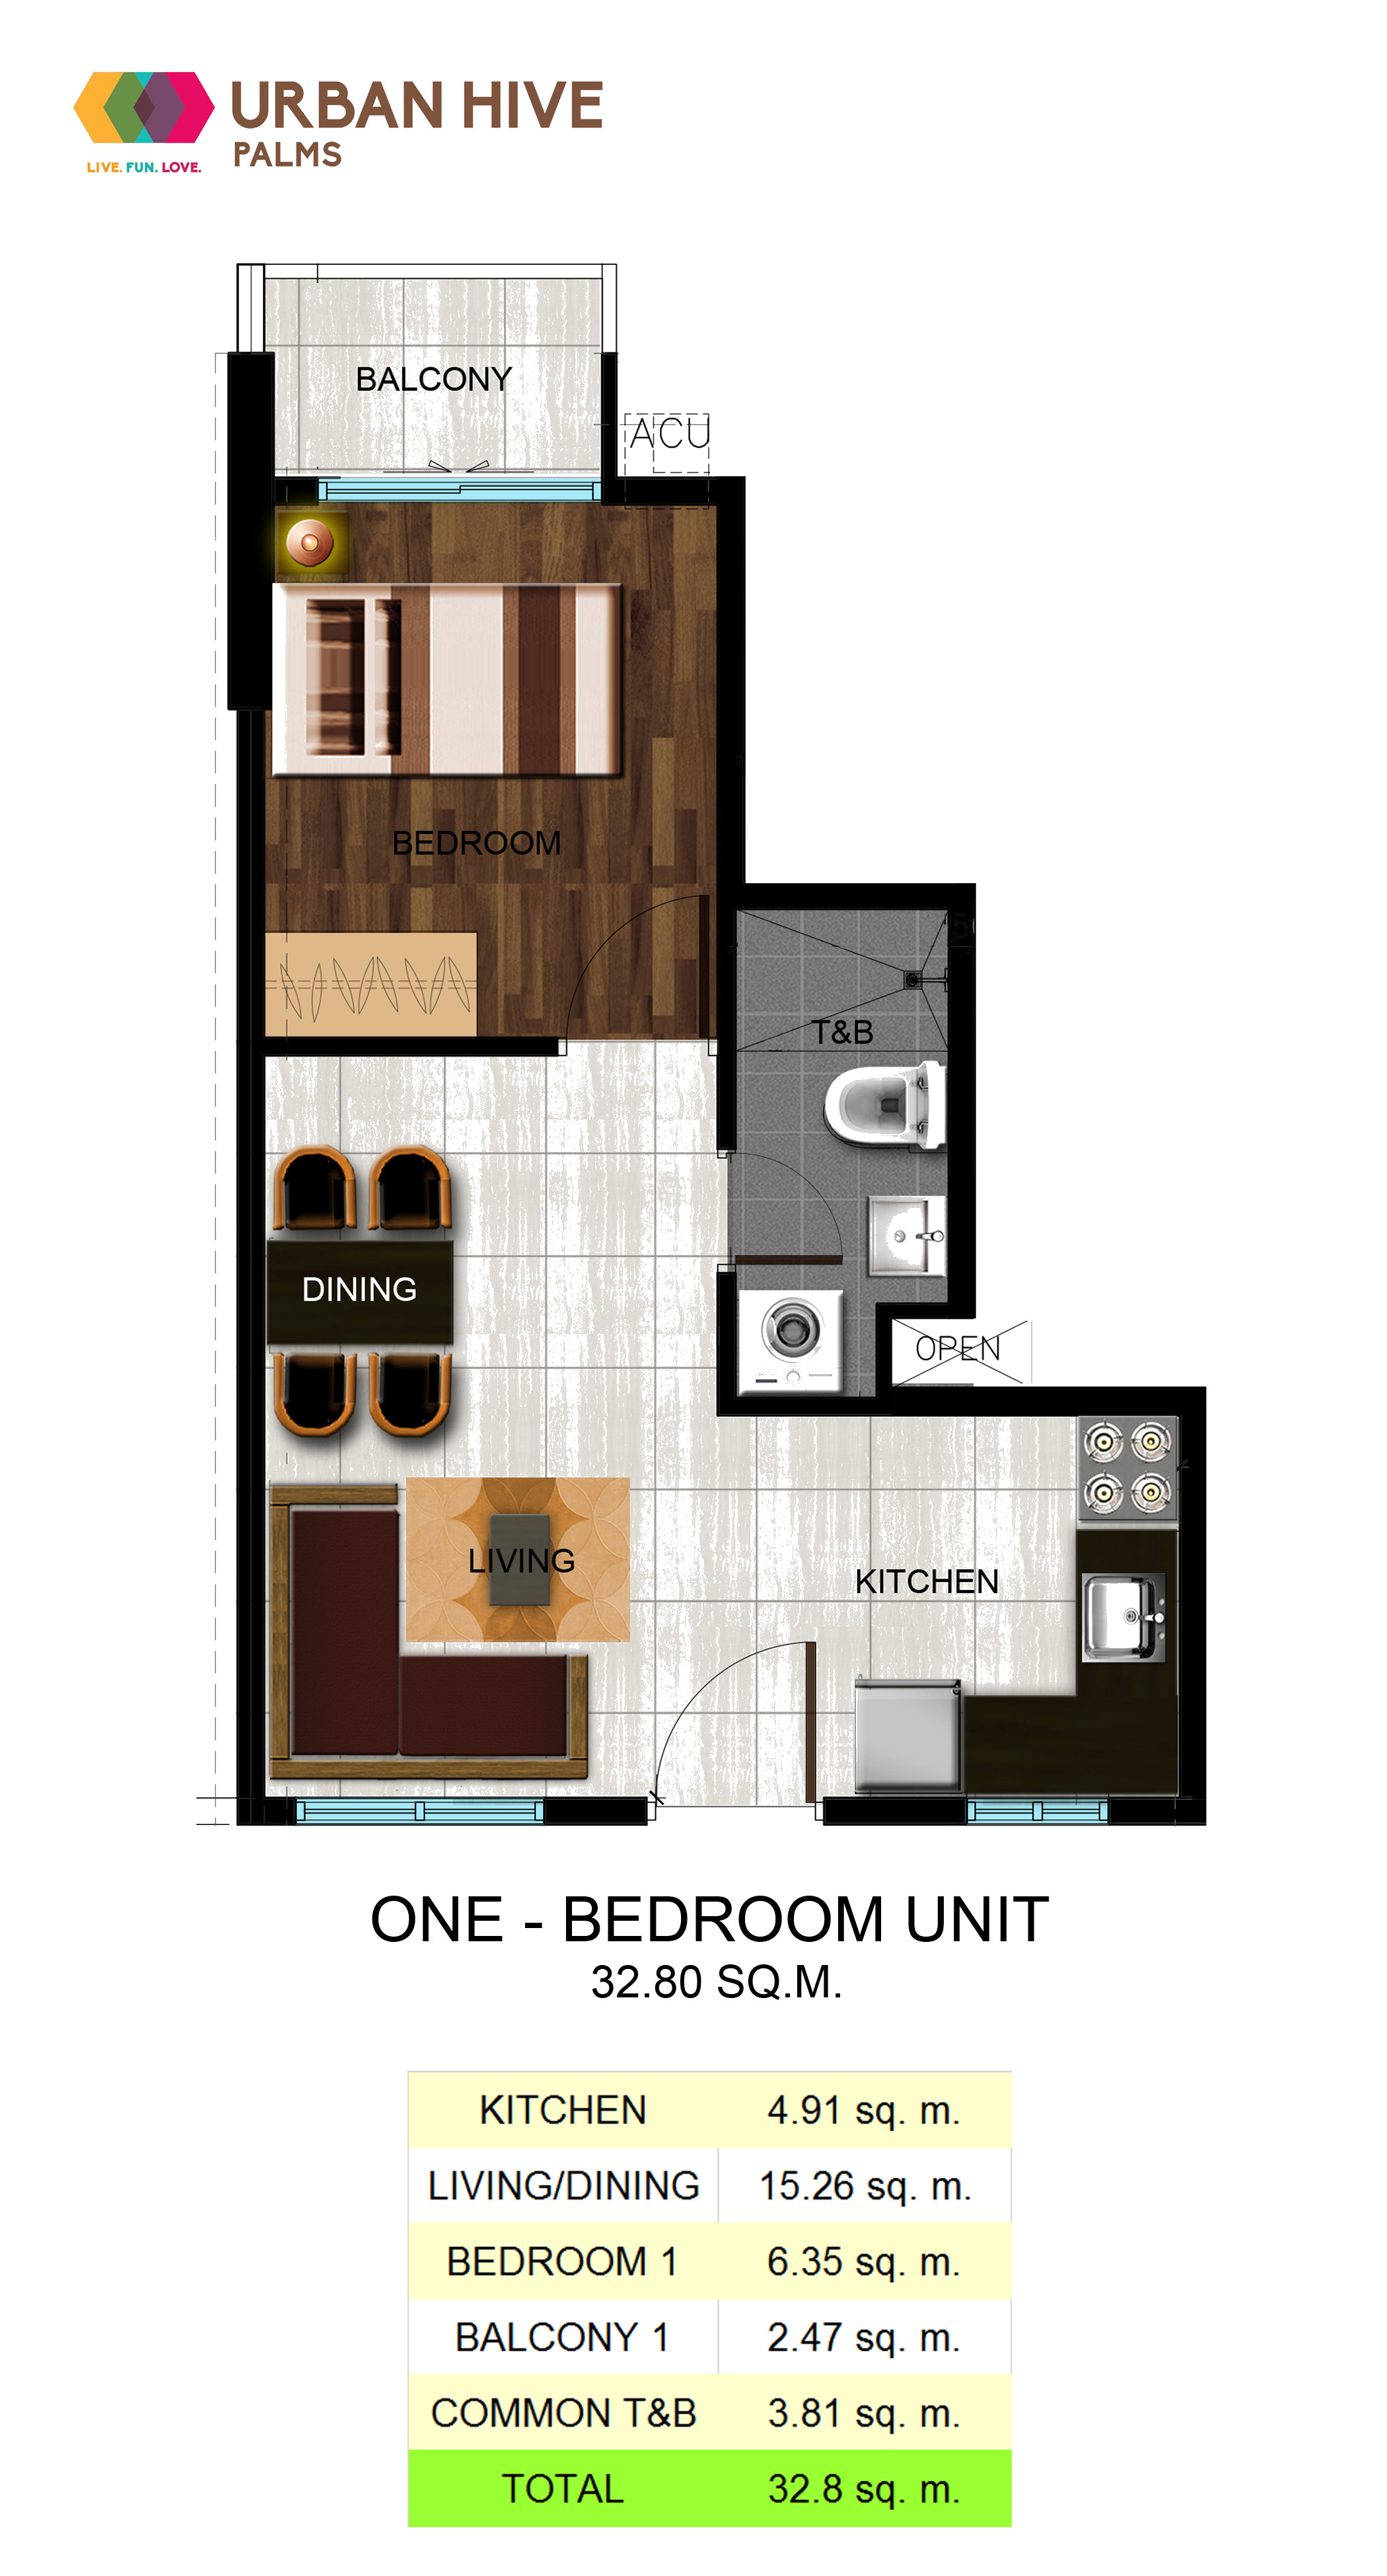 Urban Hive Palms One Bedroom Unit- 32.8 sq.m